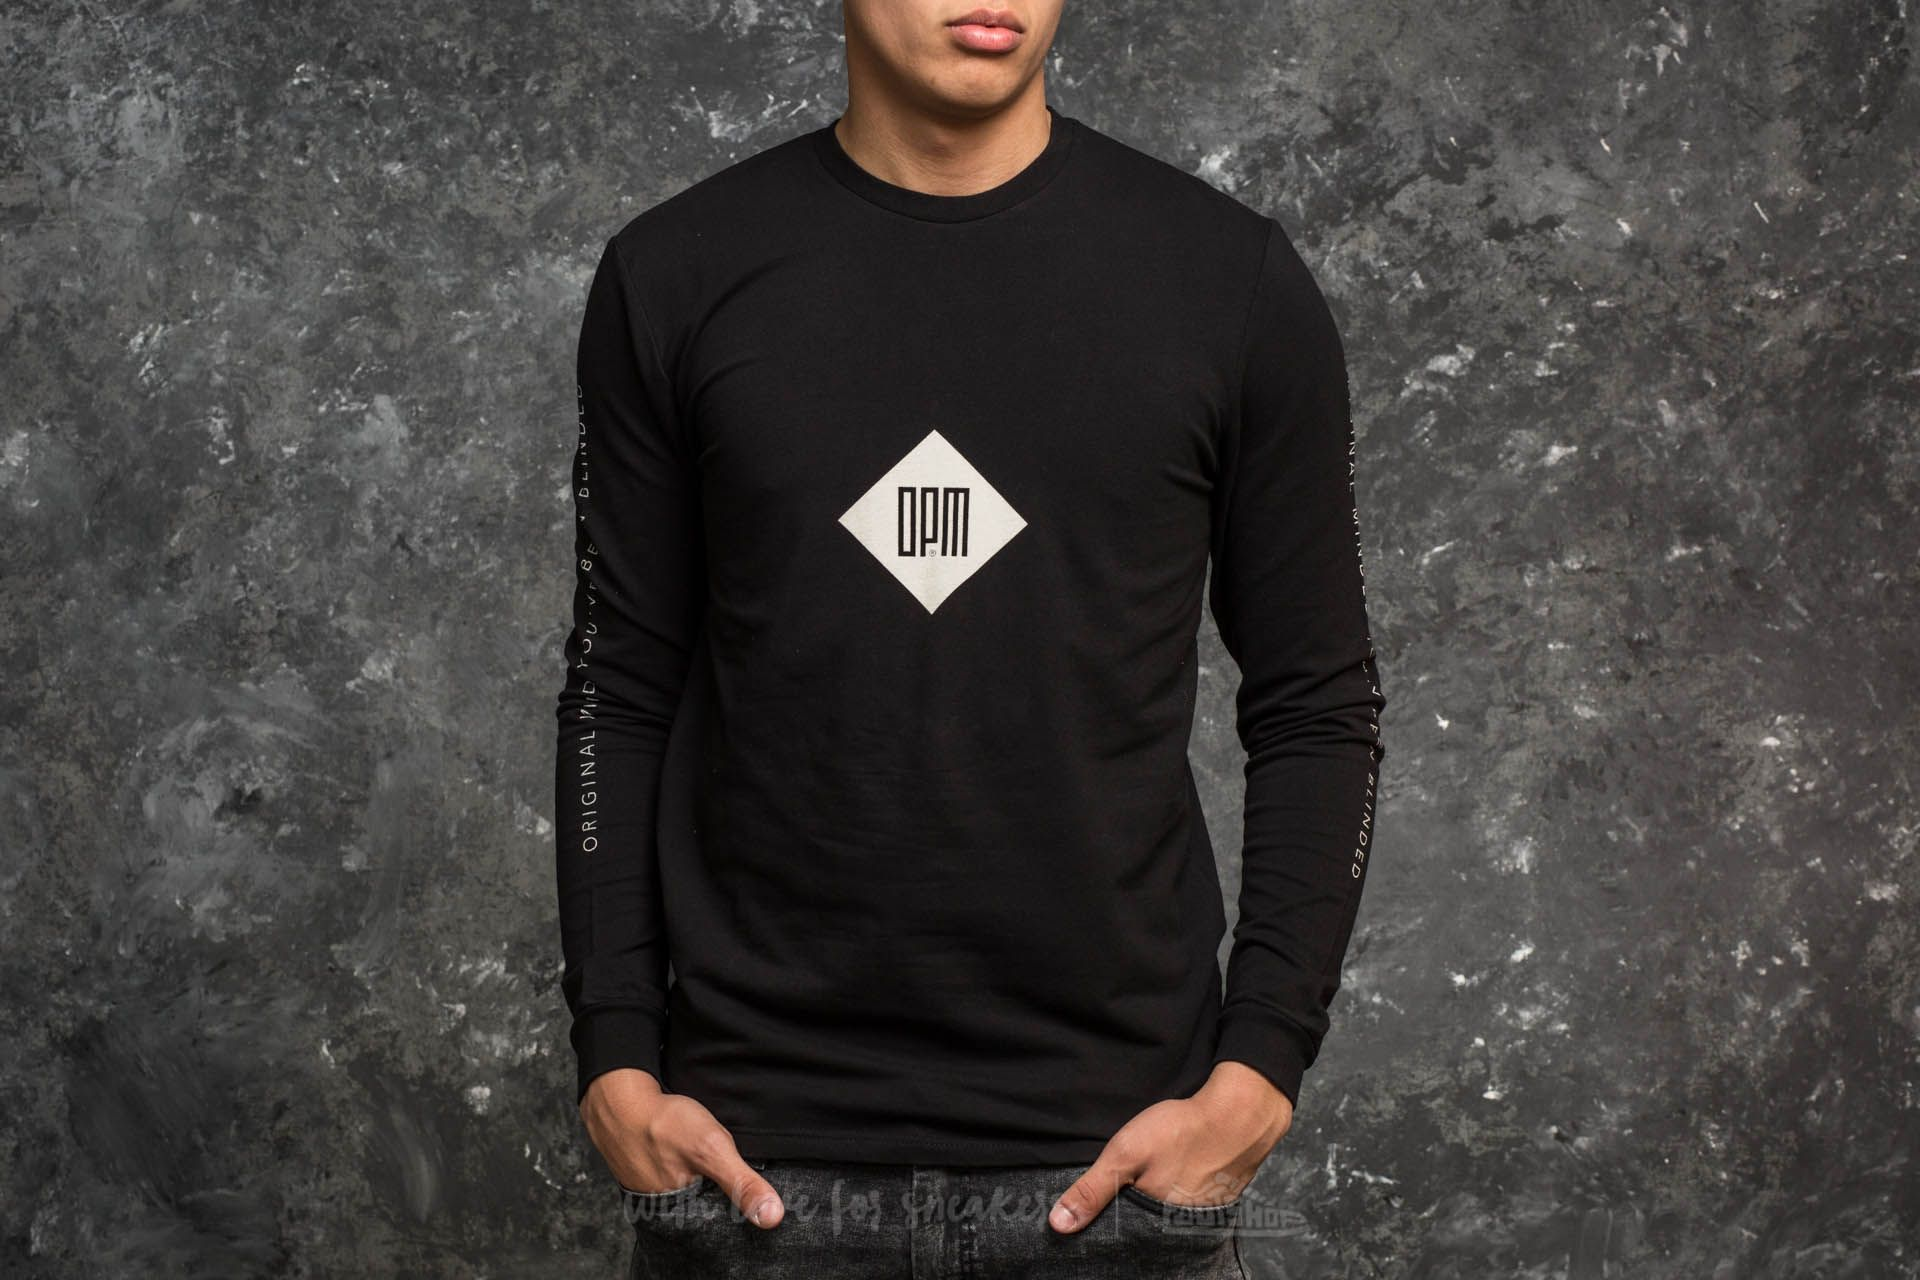 Original Peoples Mind Classic Typo Long Sleeve Tee Black - 15001